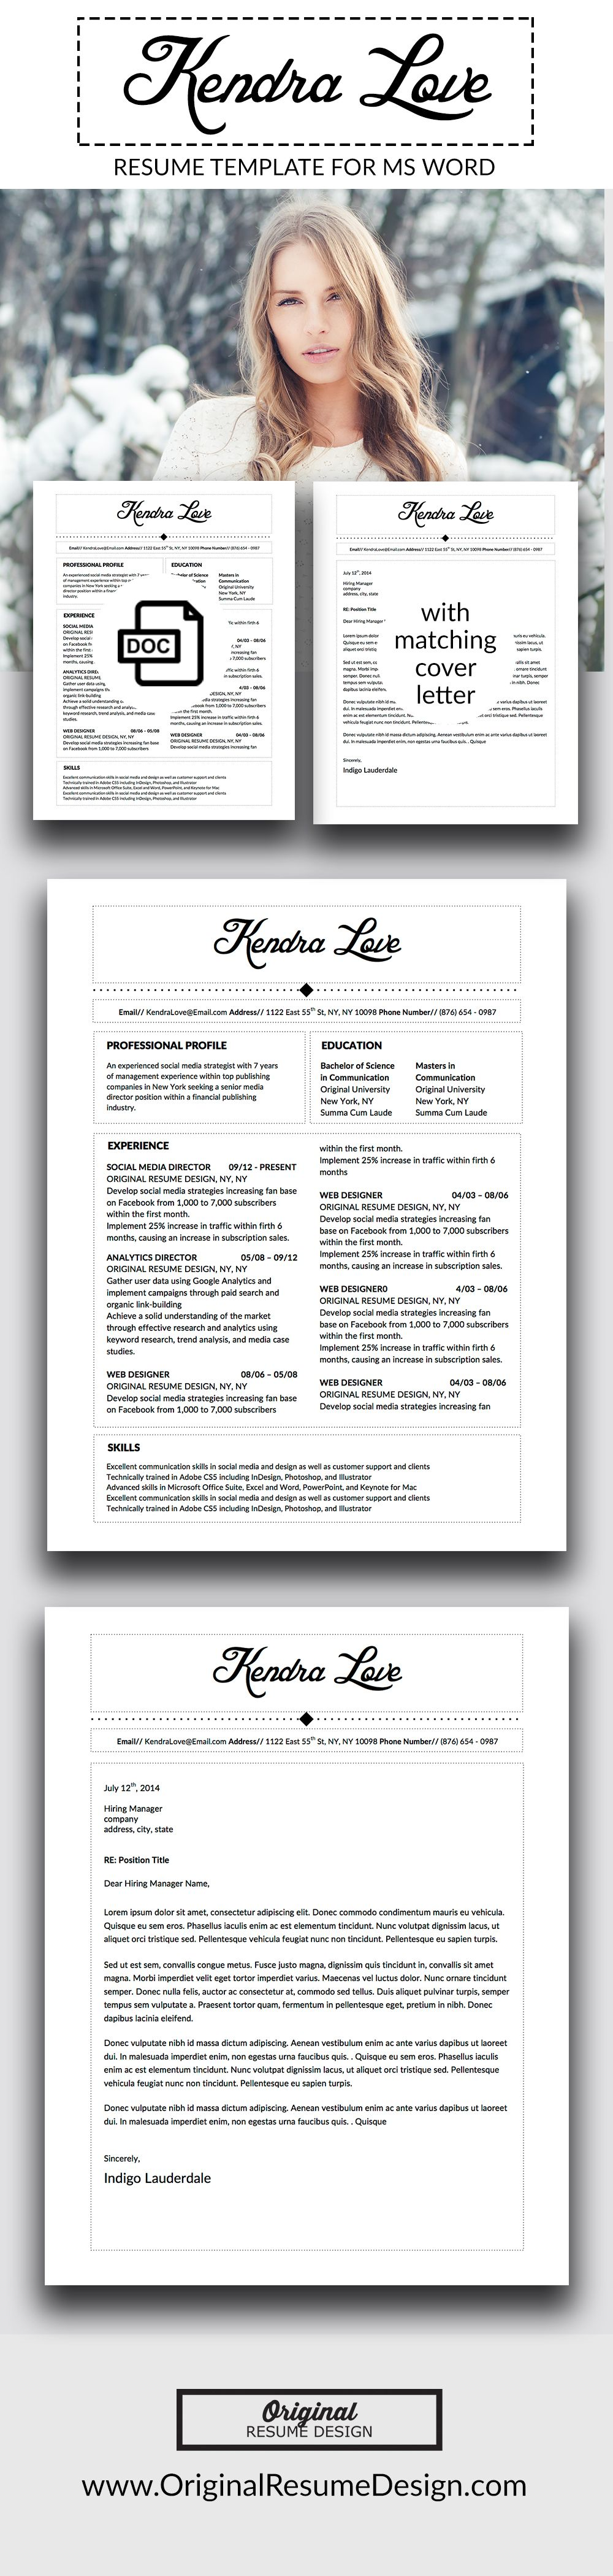 Beautiful and elegant resume design for Microsoft Word. Includes a ...